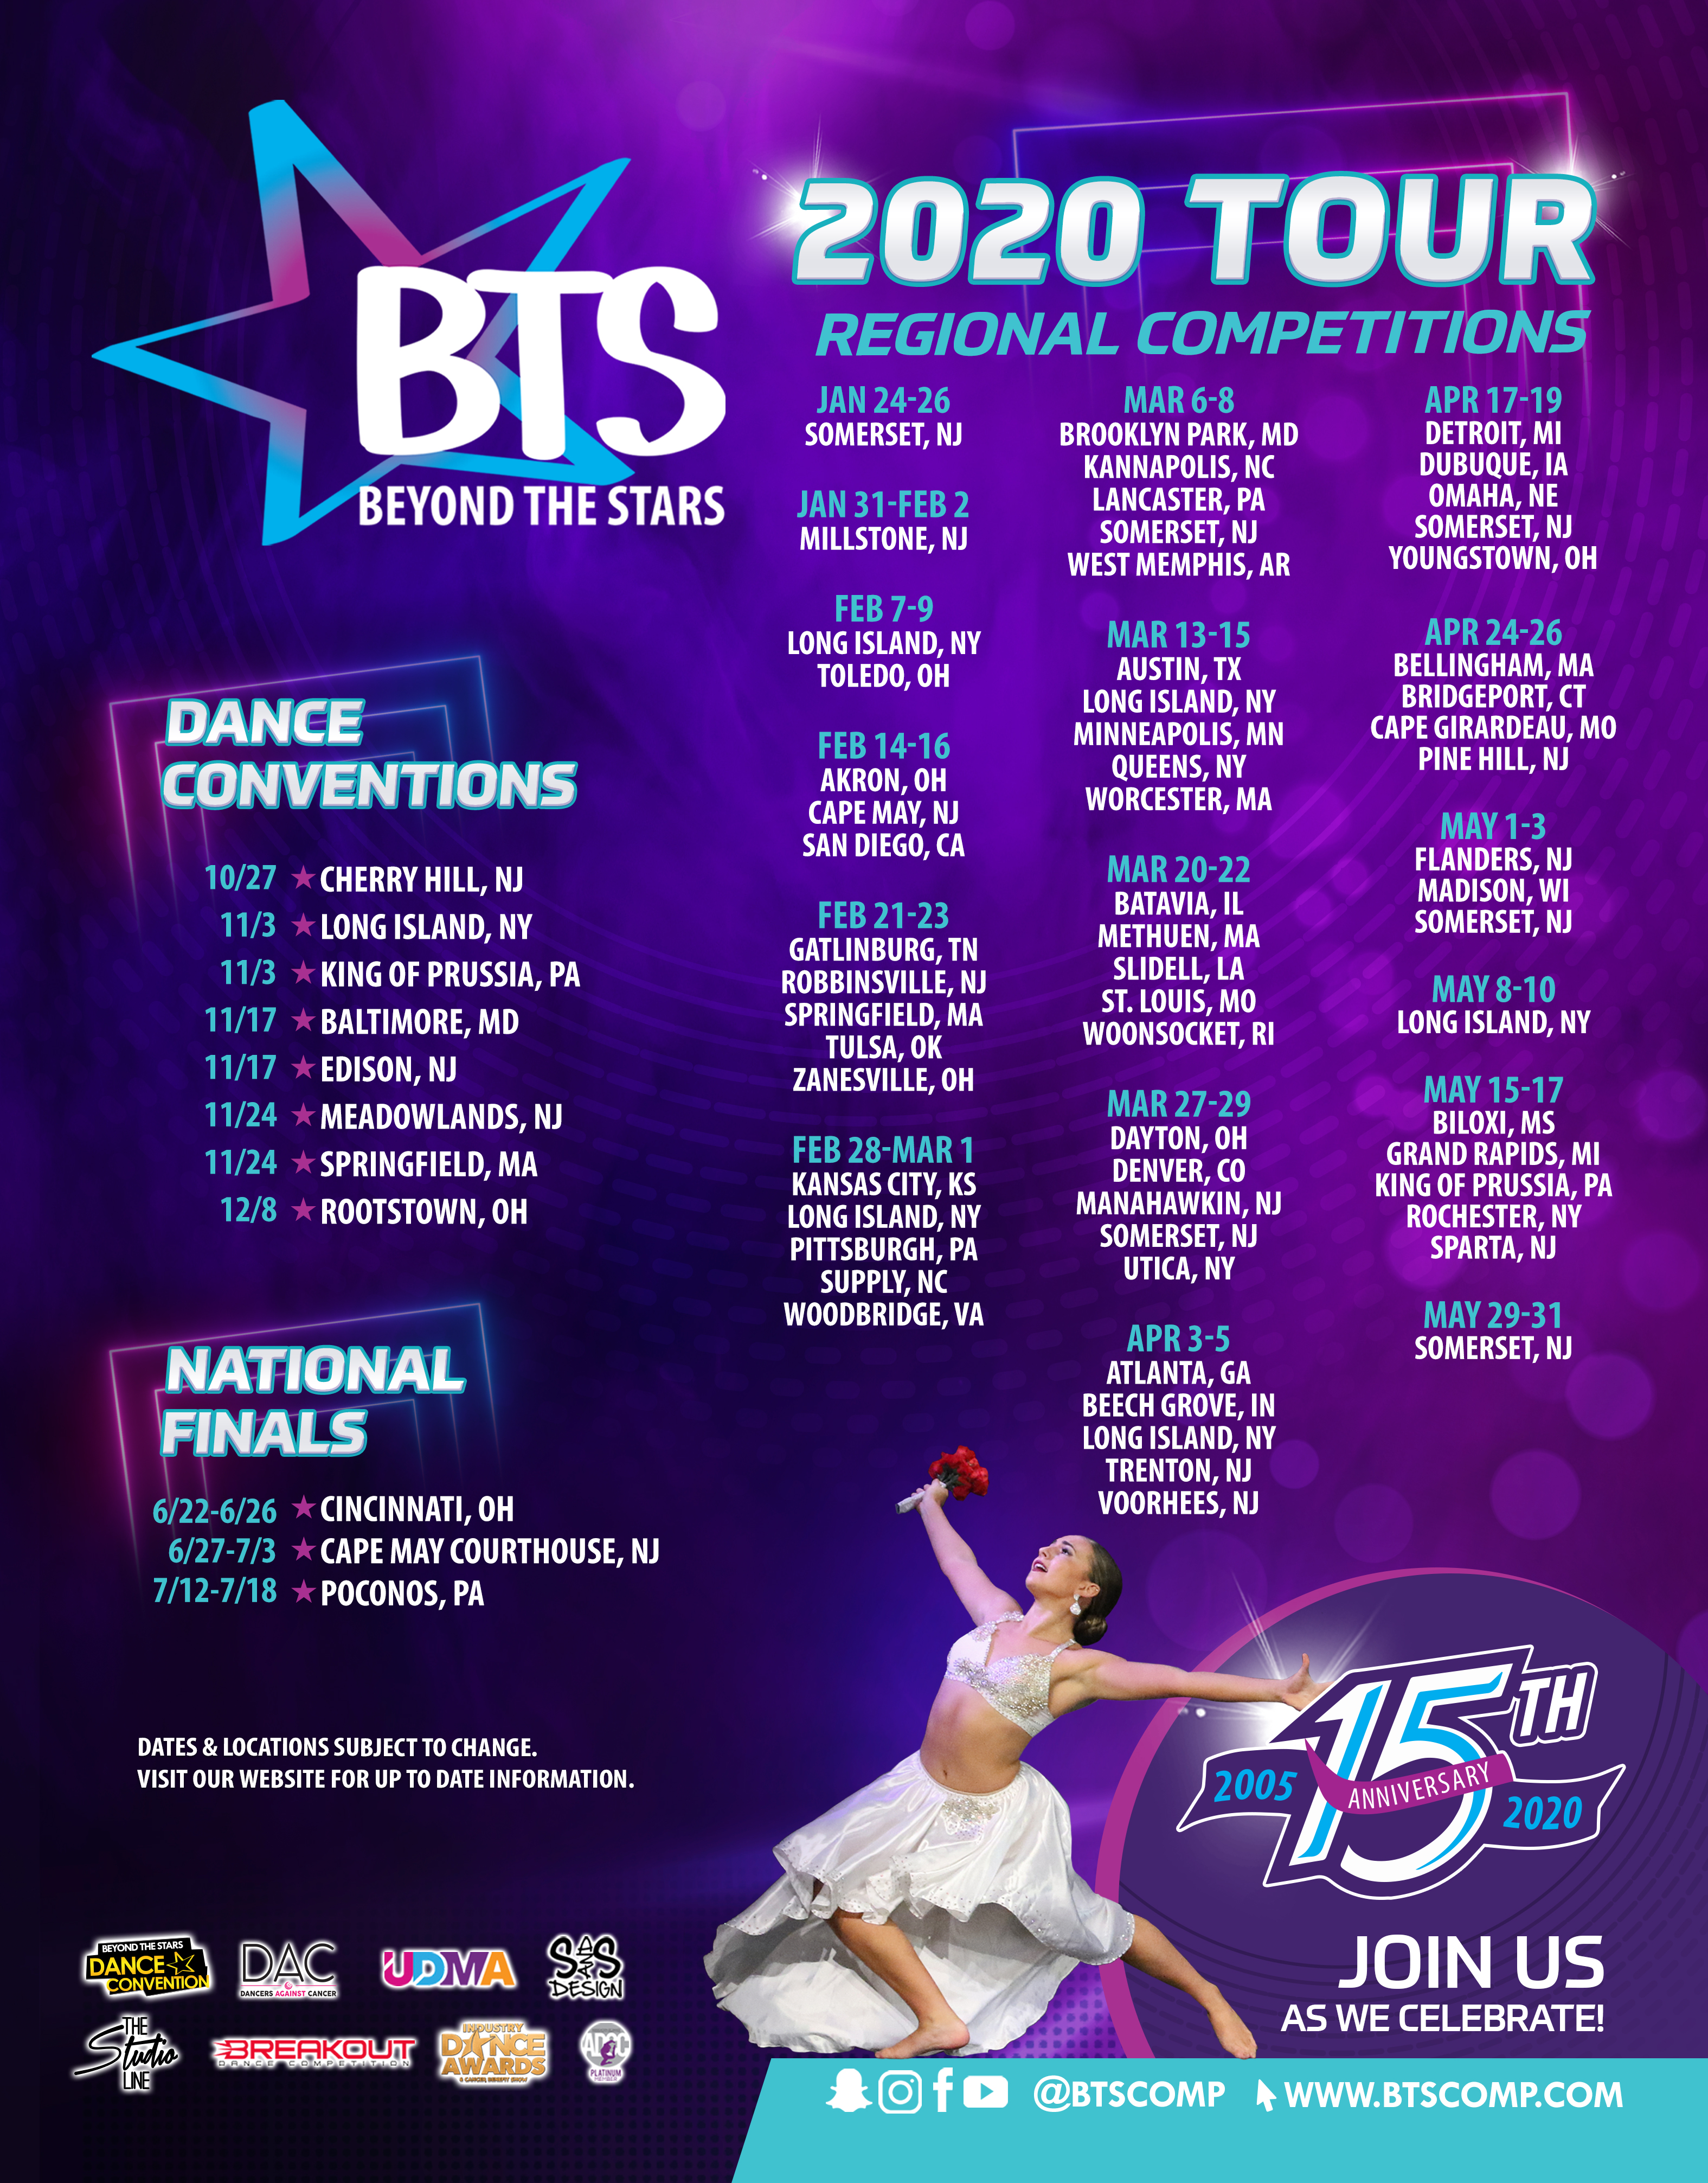 Bts 2020 Tour Dates.Beyond The Stars Competition